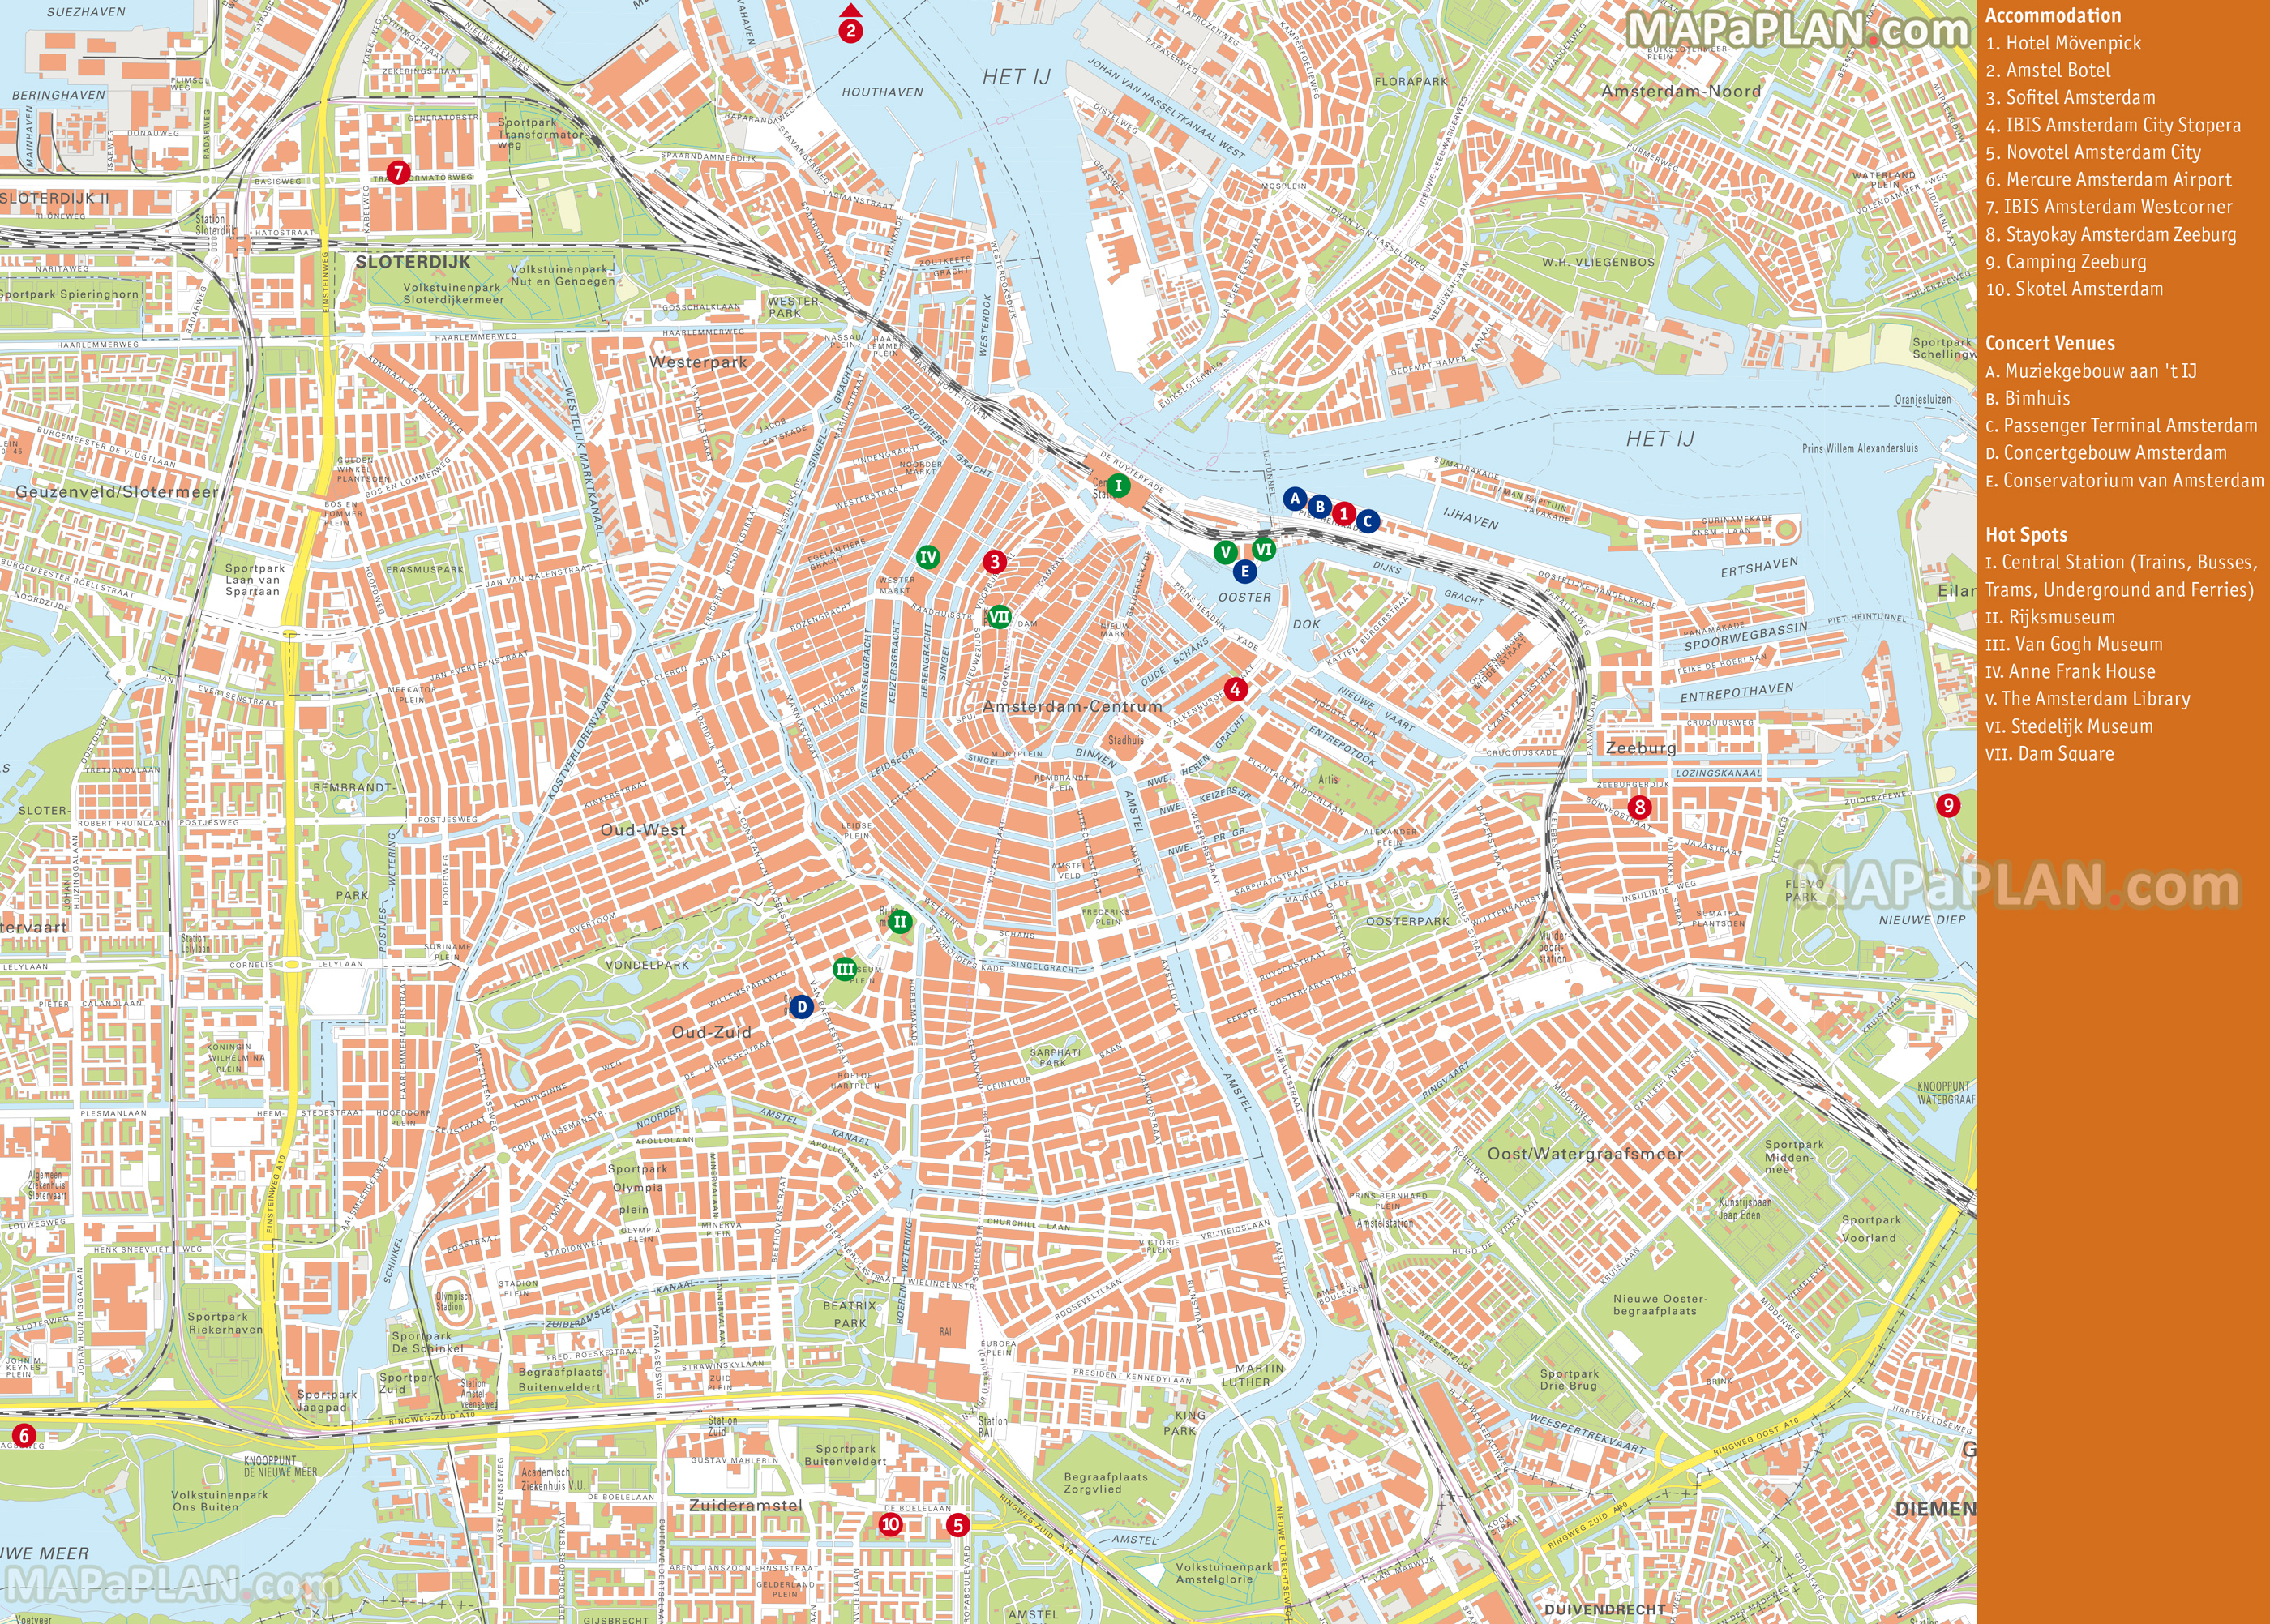 Map Of Amsterdam Amsterdam maps   Top tourist attractions   Free, printable city  Map Of Amsterdam